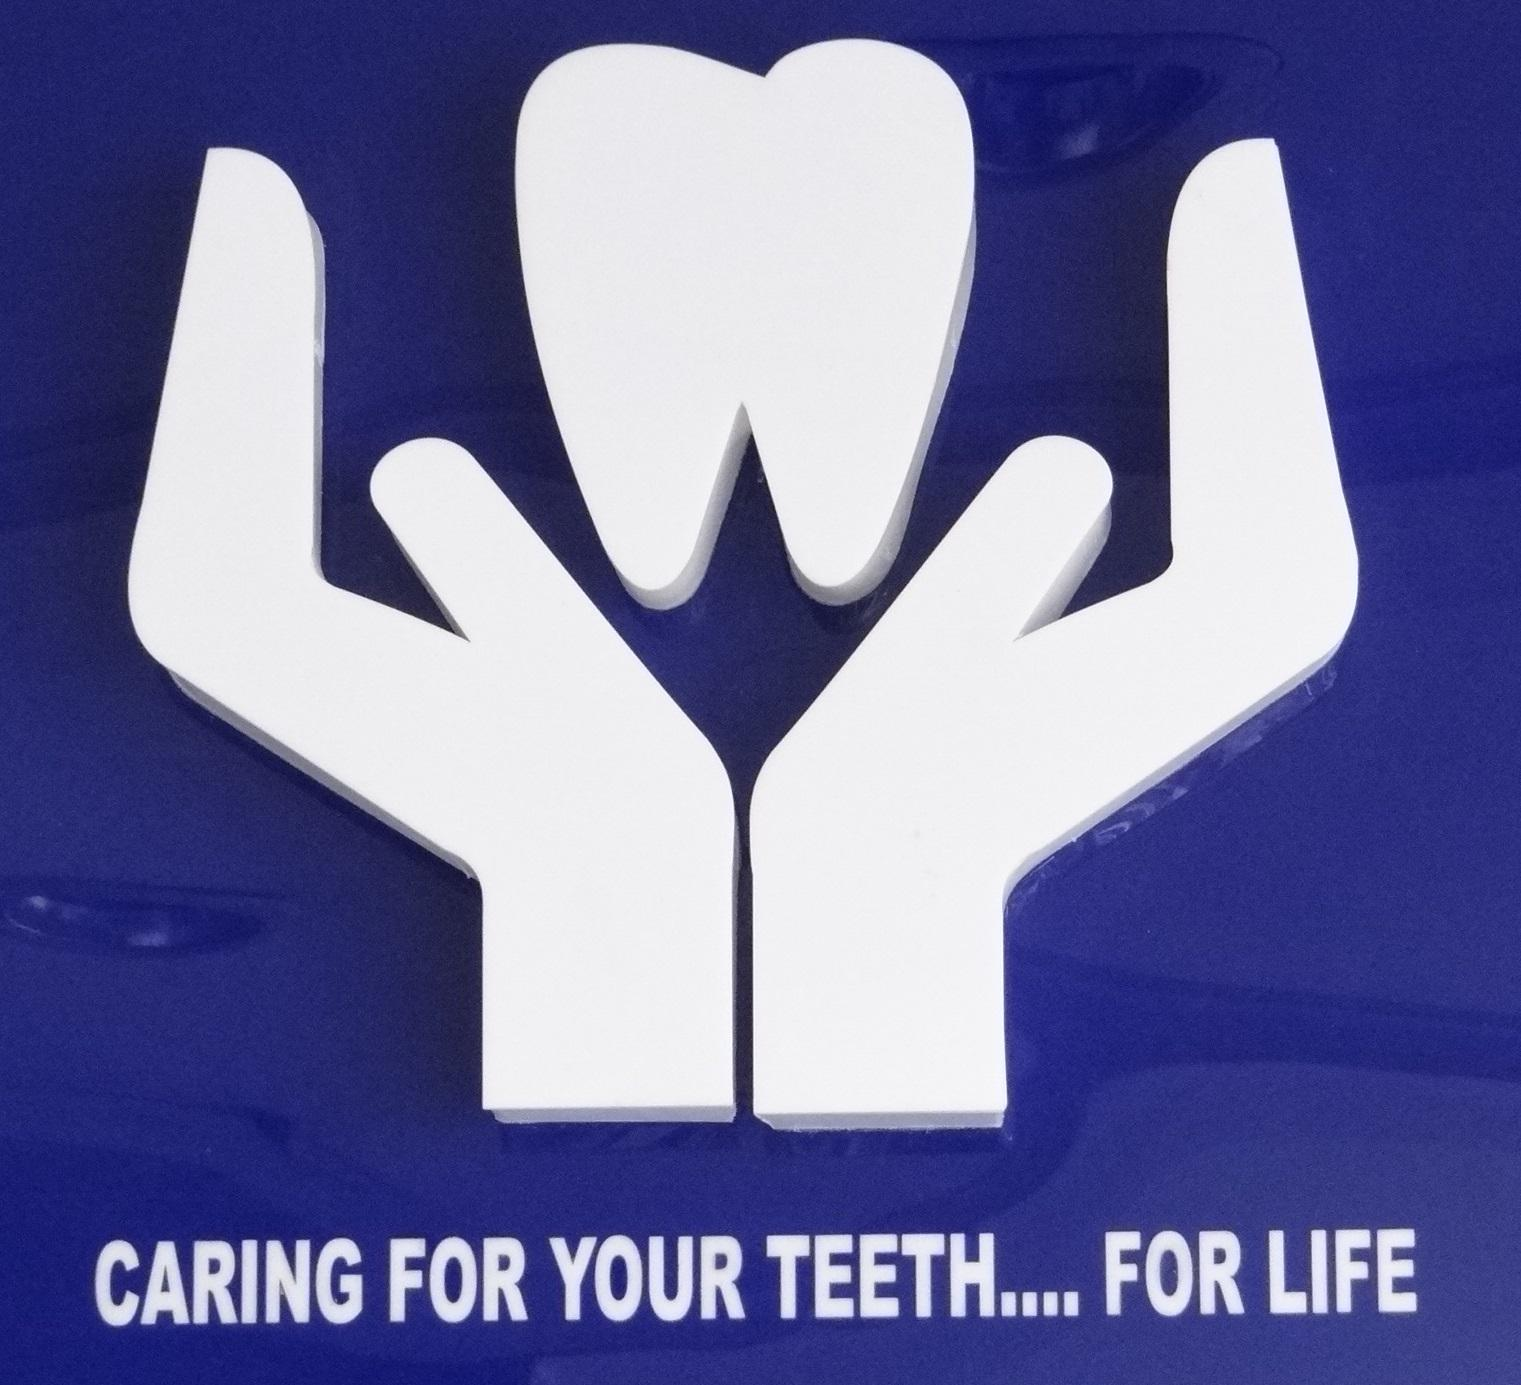 U.S Dental Care & Implant Centre